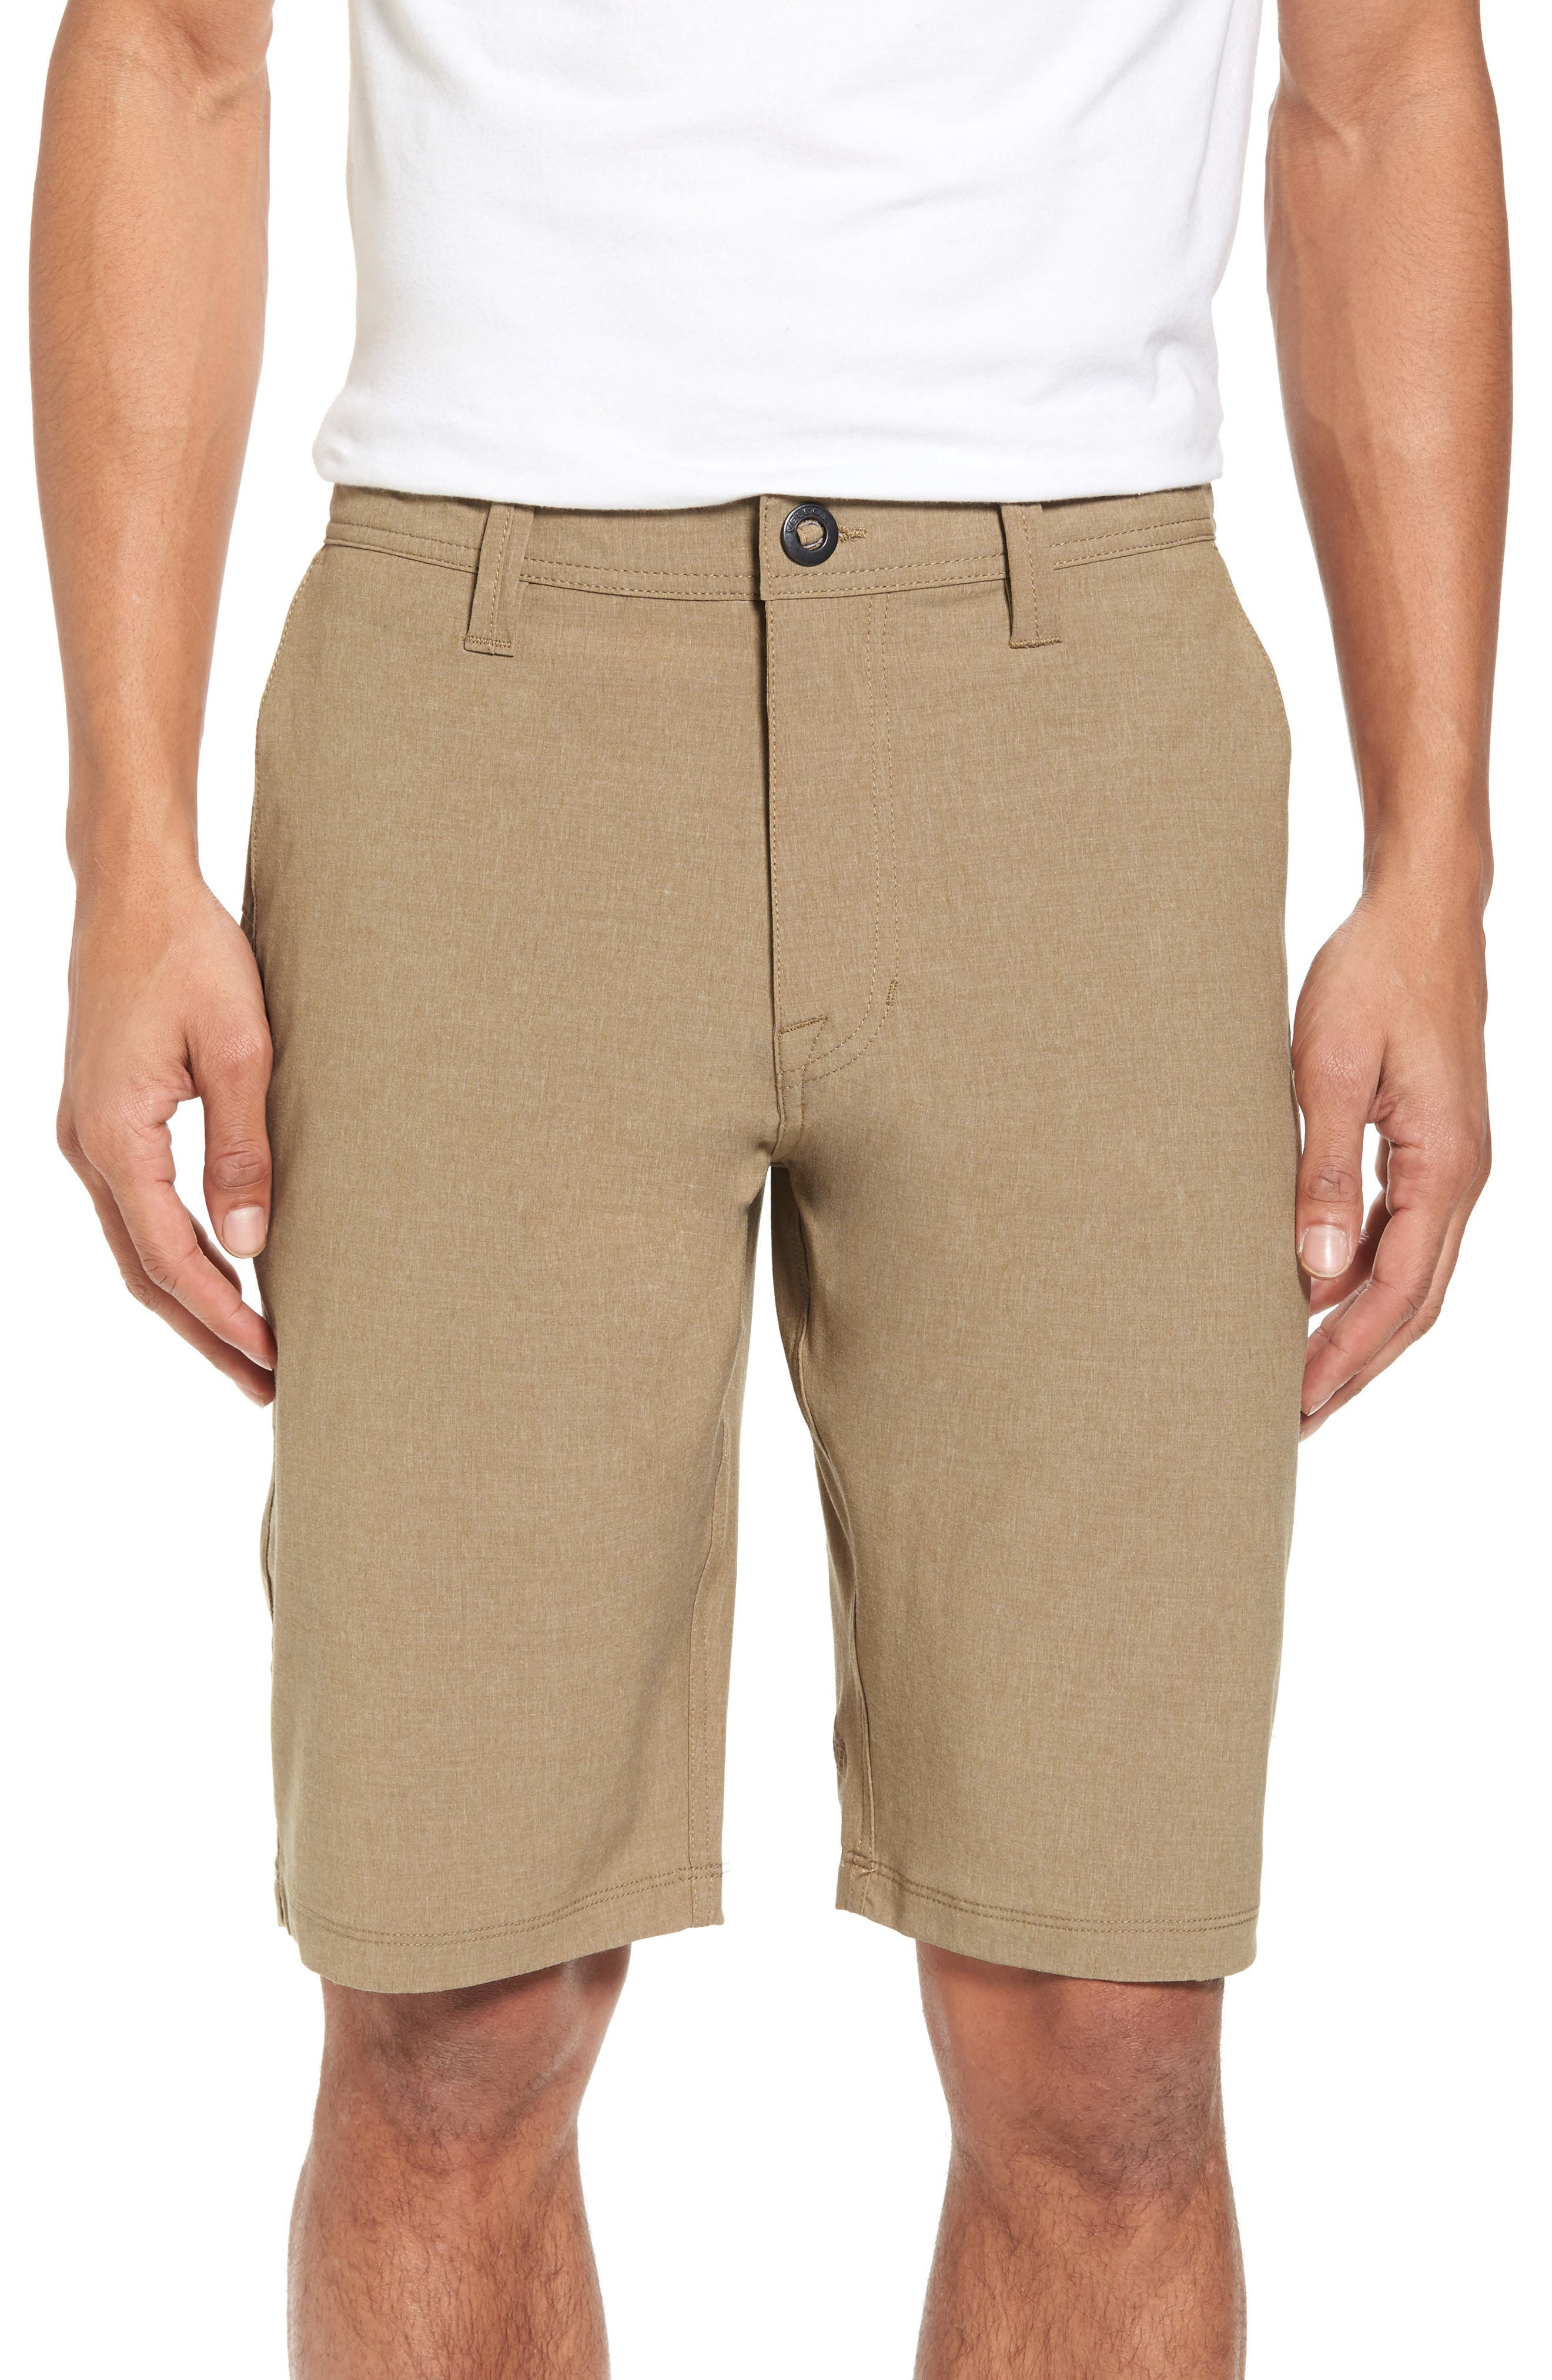 Hybrid Shorts,                             Main thumbnail 1, color,                             Beige